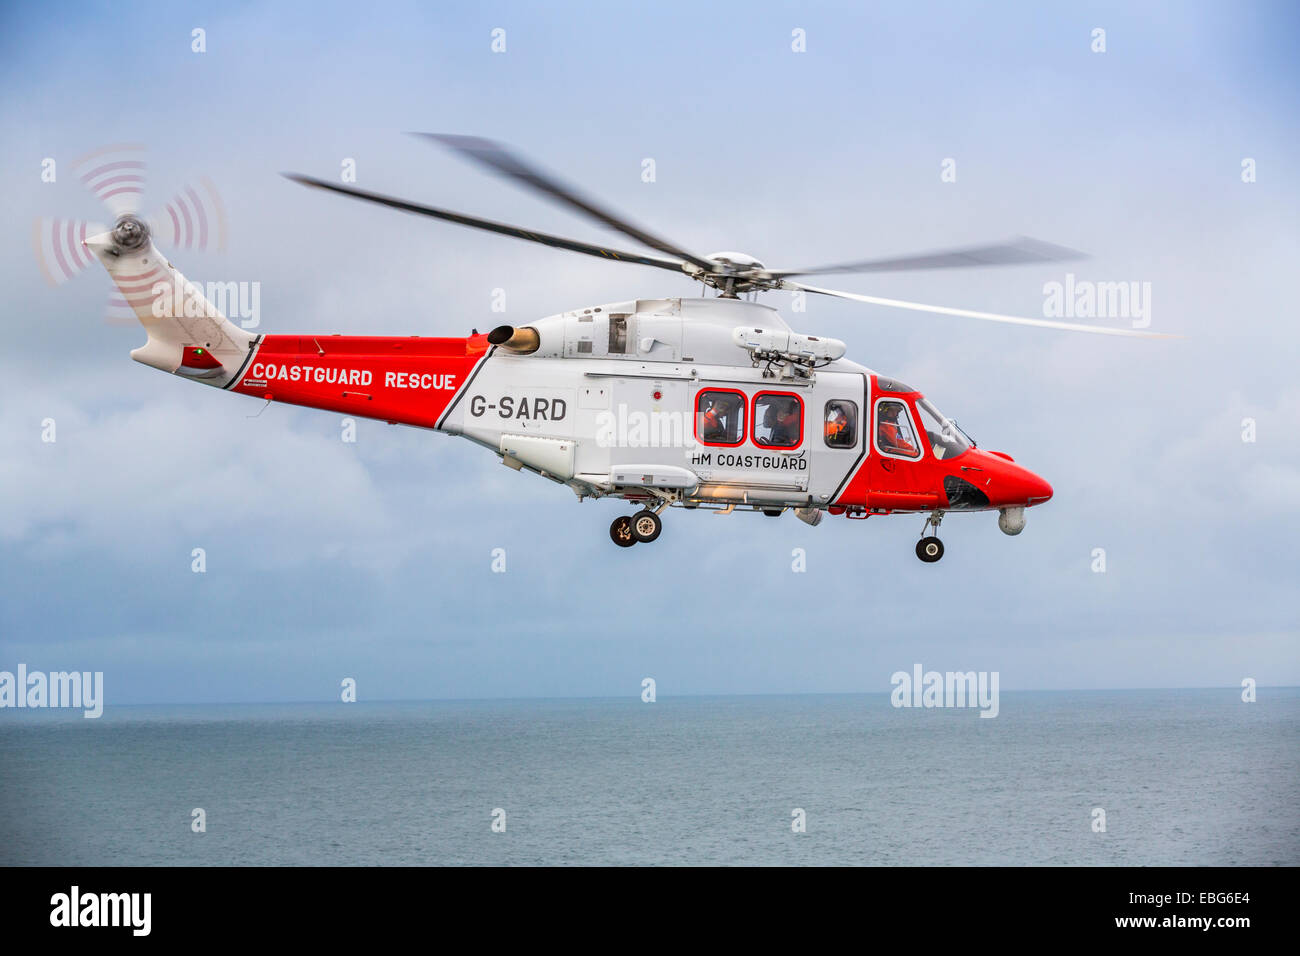 A view of an Augusta HM Coastguard Search and Rescue helicopter - Stock Image